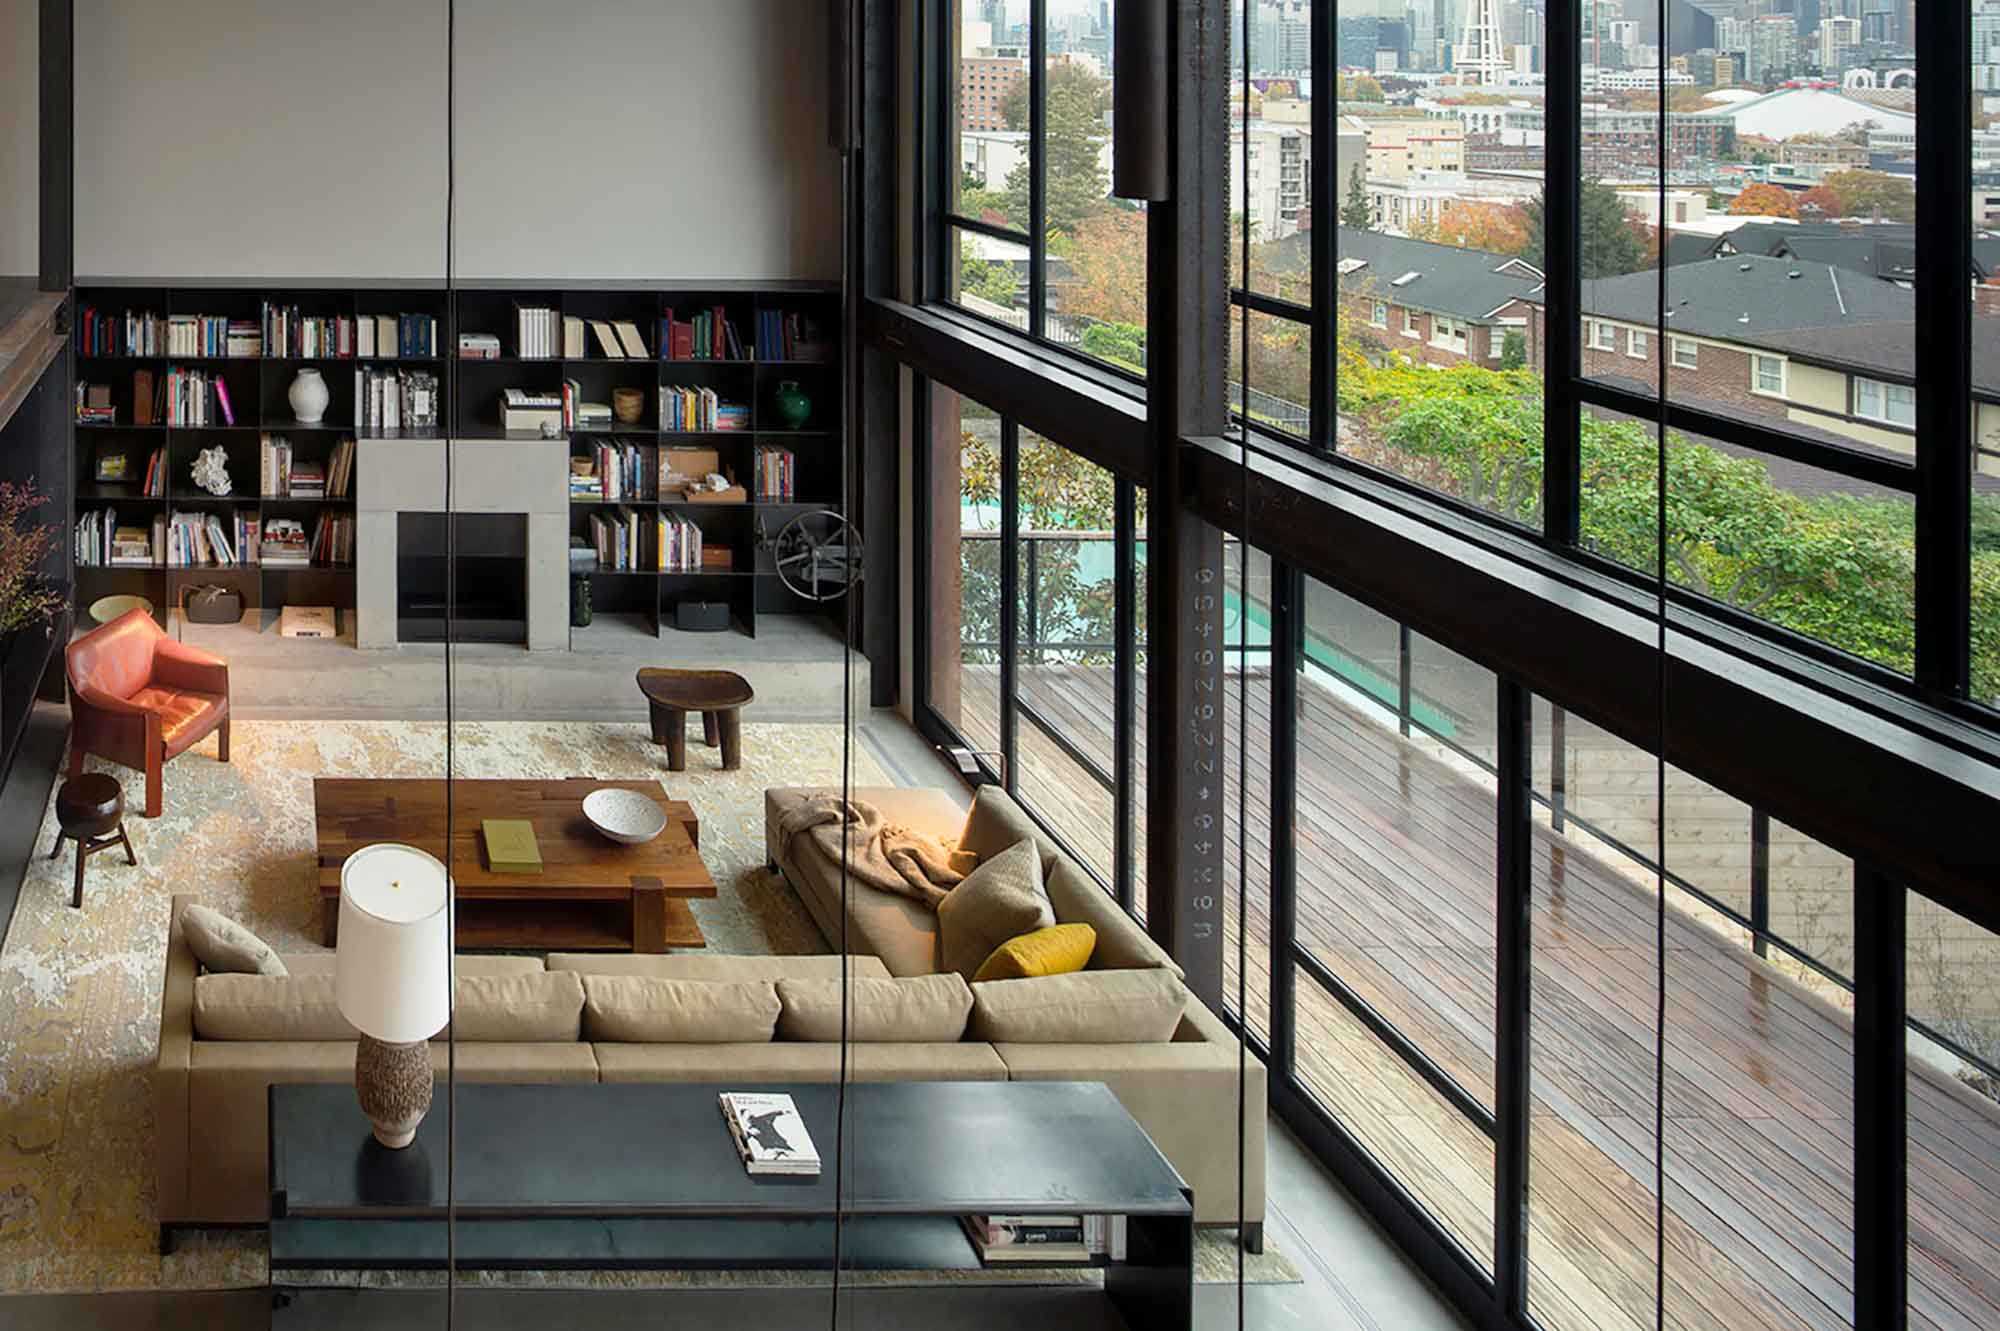 BROMBAL'S GUILLOTINE WINDOWS AND DOORS IN A PROJECT IN SEATTLE